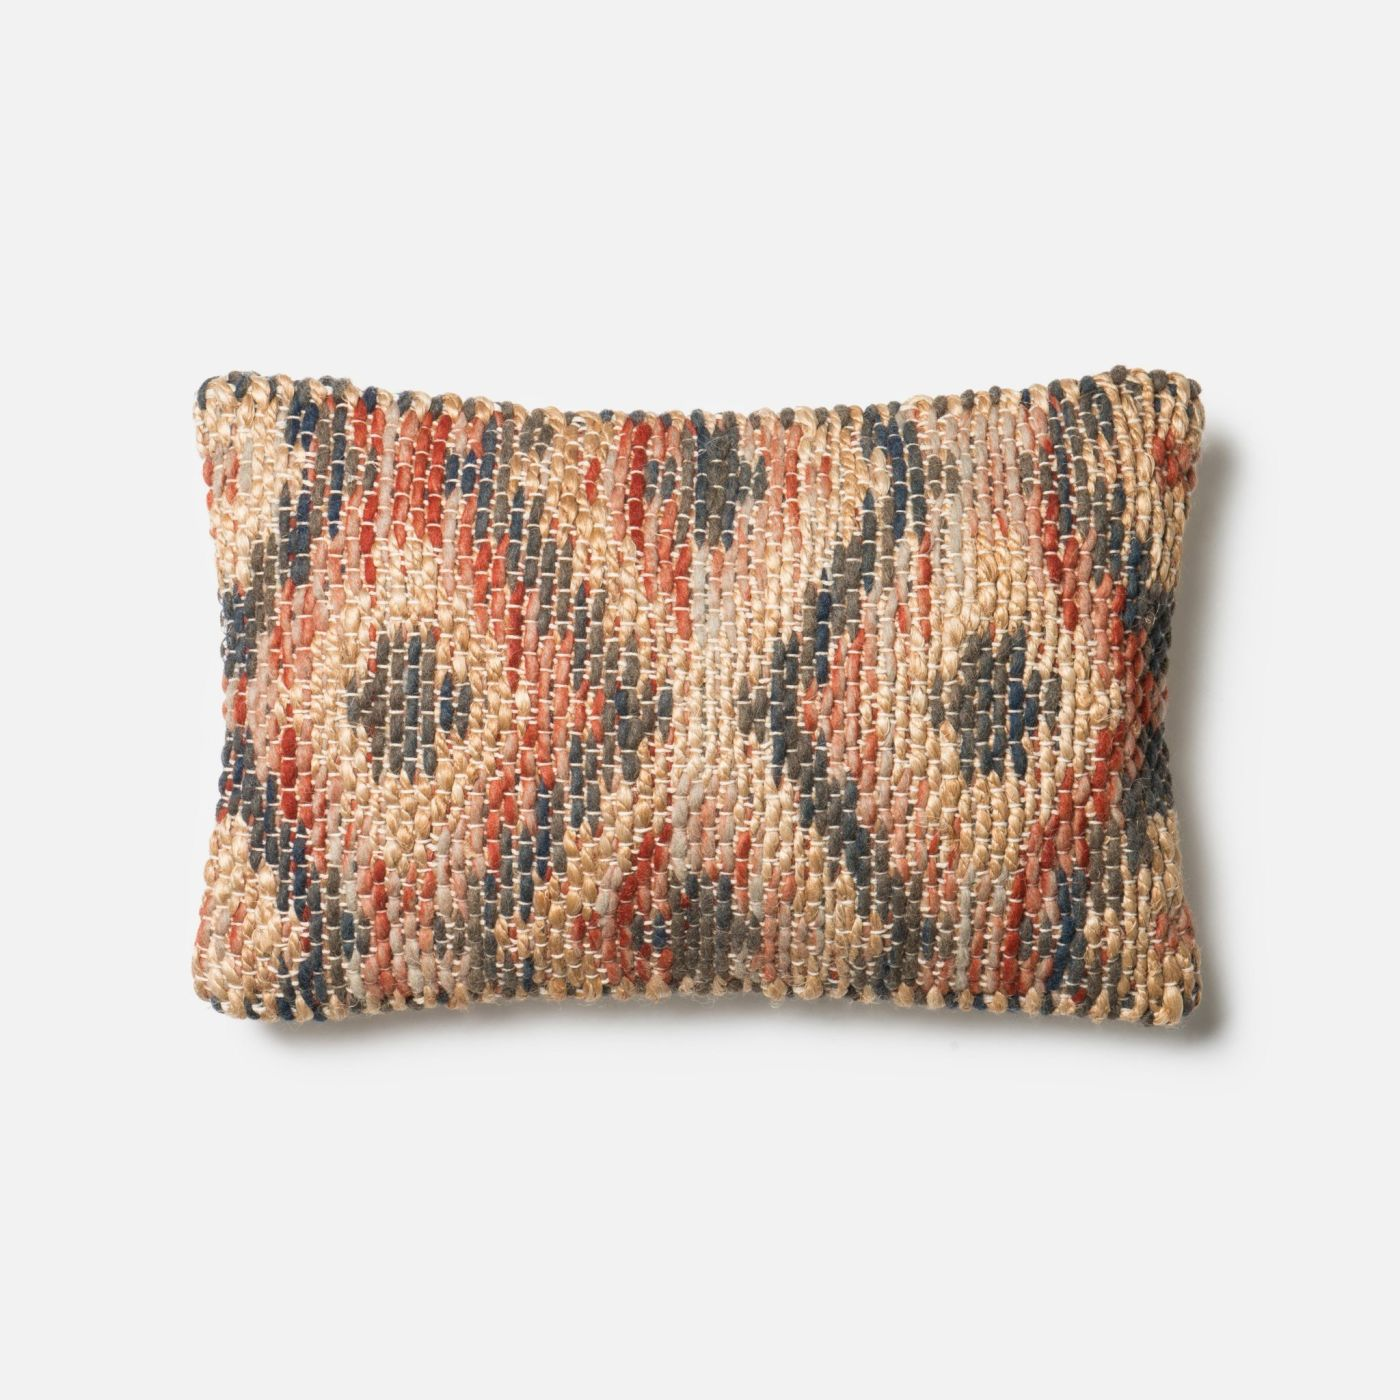 Loloi Rugs Loloi Red / Beige Decorative Throw Pillow (P0328) PSETP0328REBEPIL3. Only $89.00 at ...